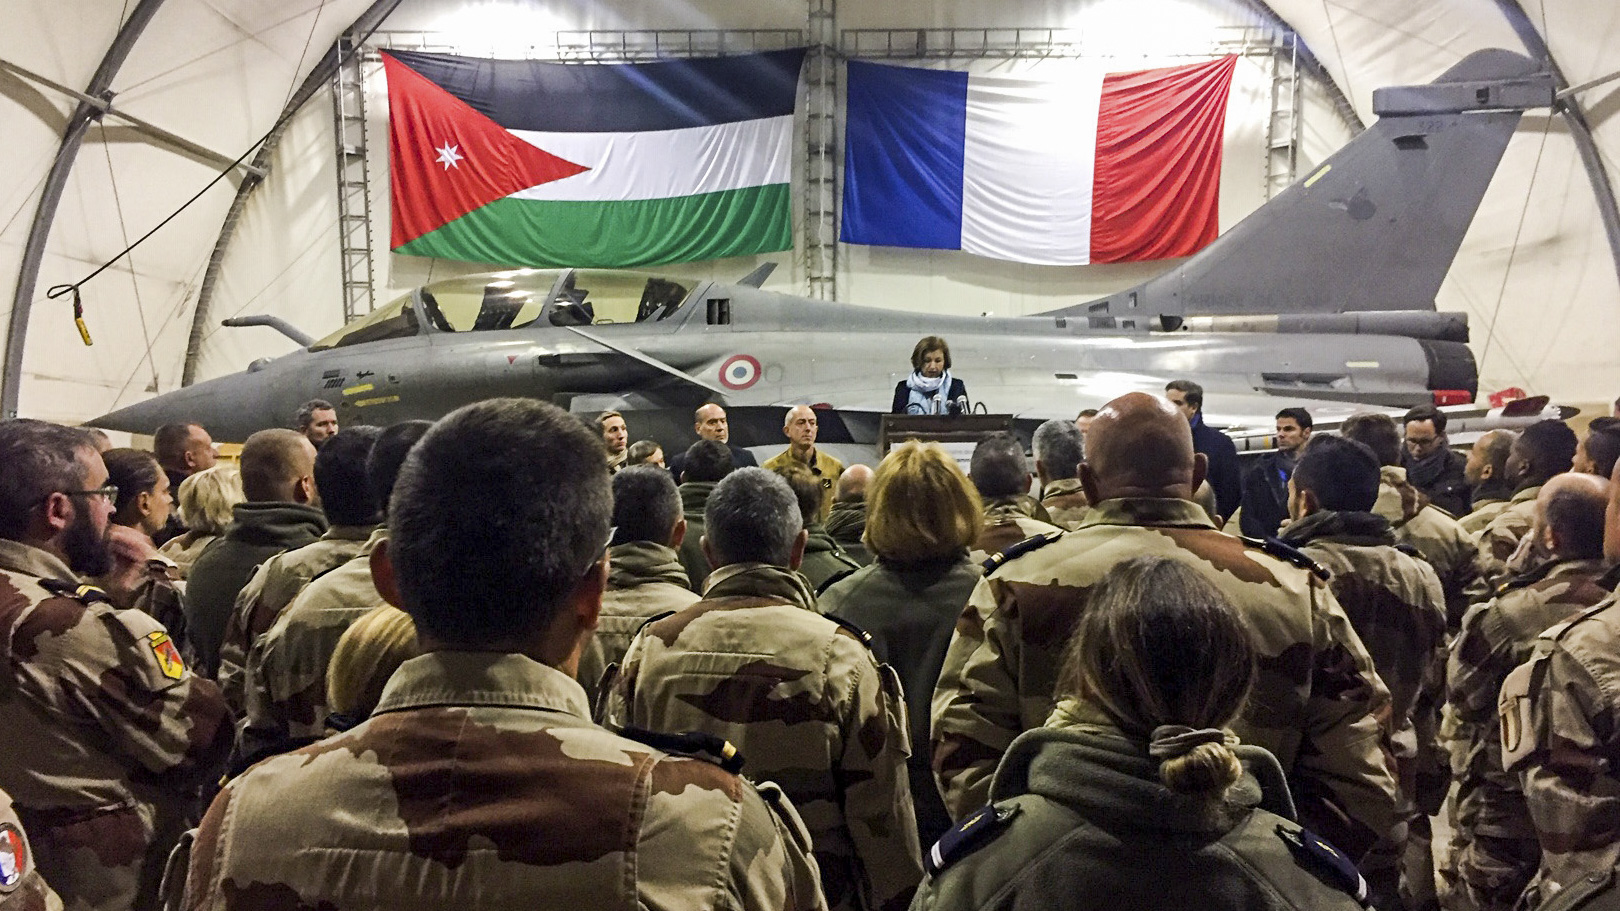 French Defence Minister Florence Parly (C) gives an address as she stands next to the Chief of Staff of the French Air Force, General Philippe Lavigne (C-L), before a Dassault Rafale fighter-bomber aircraft during her visit to the Royal Jordanian Air Force's Prince Hassan Air Base (H5), northeast of the capital Amman, on December 31, 2018, from which French fighter jets take-off for sorties within their capacity in the international coalition against the Islamic State (IS) group. (DAPHNE BENOIT/AFP/Getty Images)